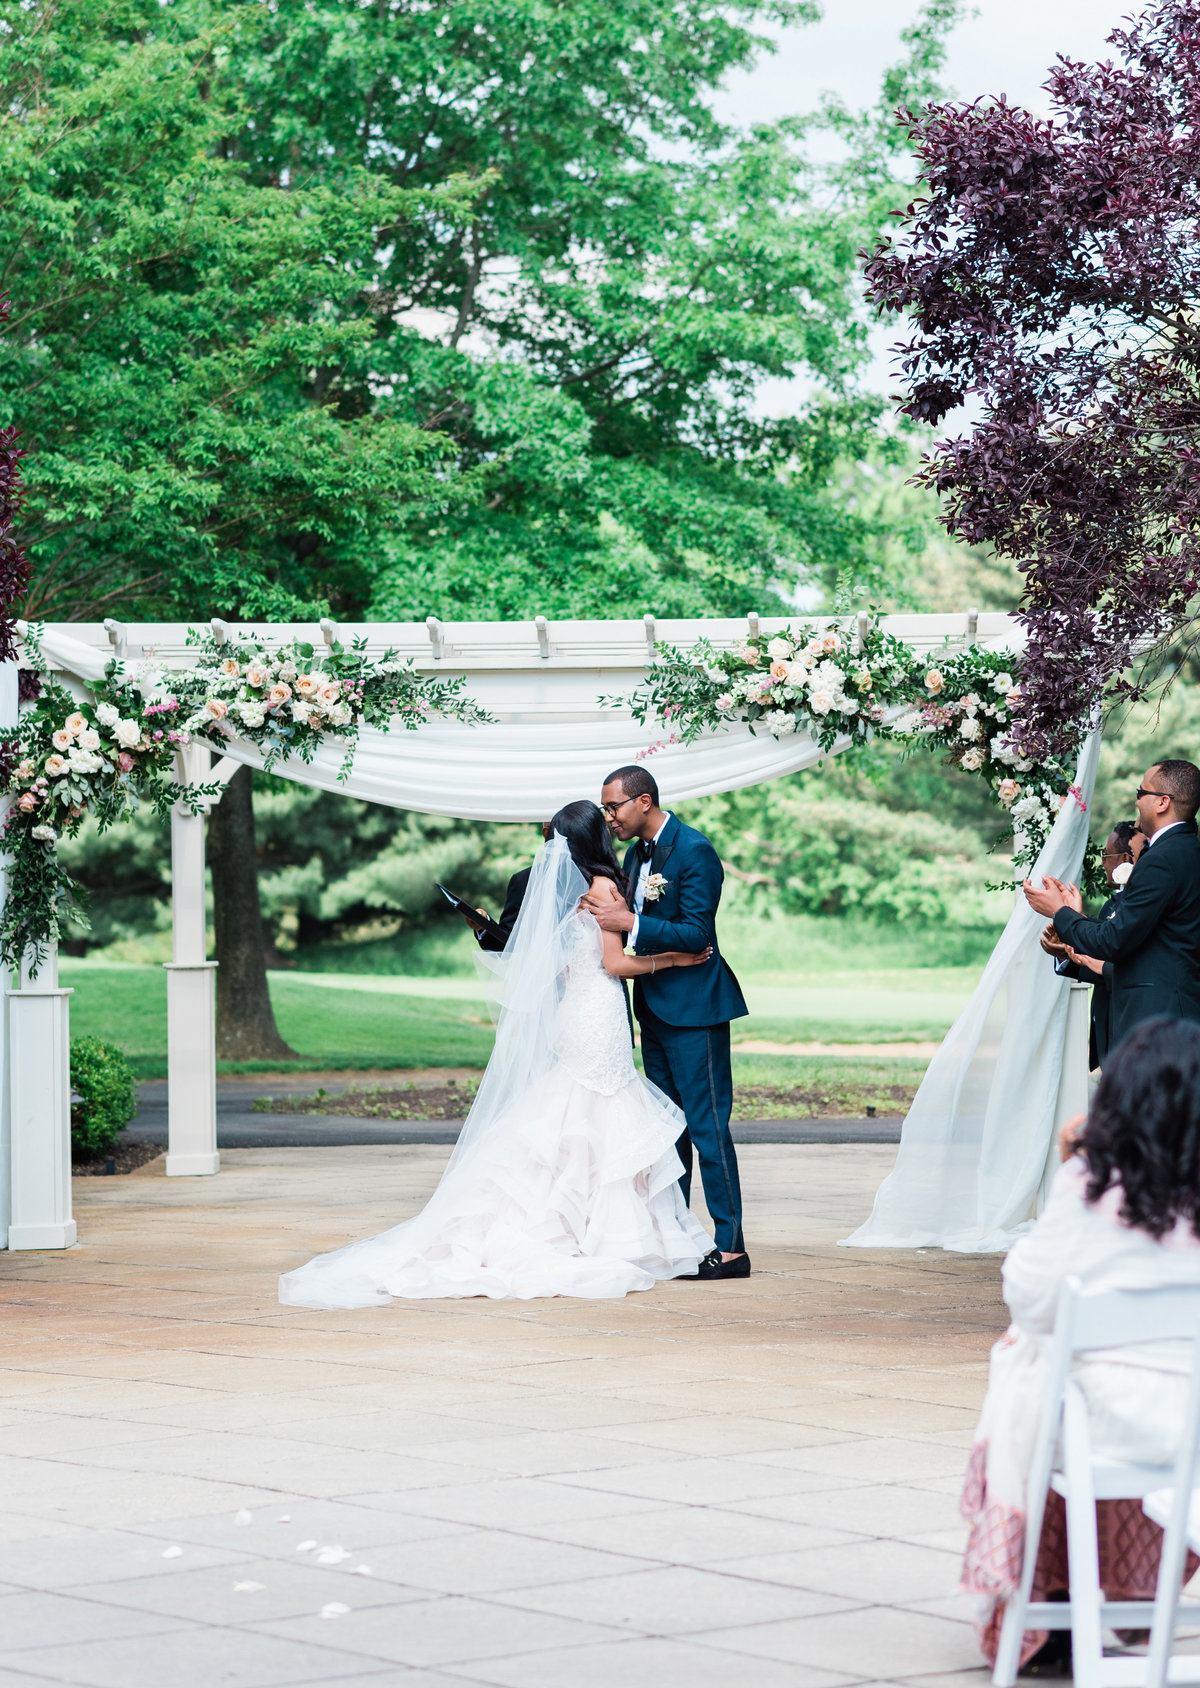 The kiss + ceremony